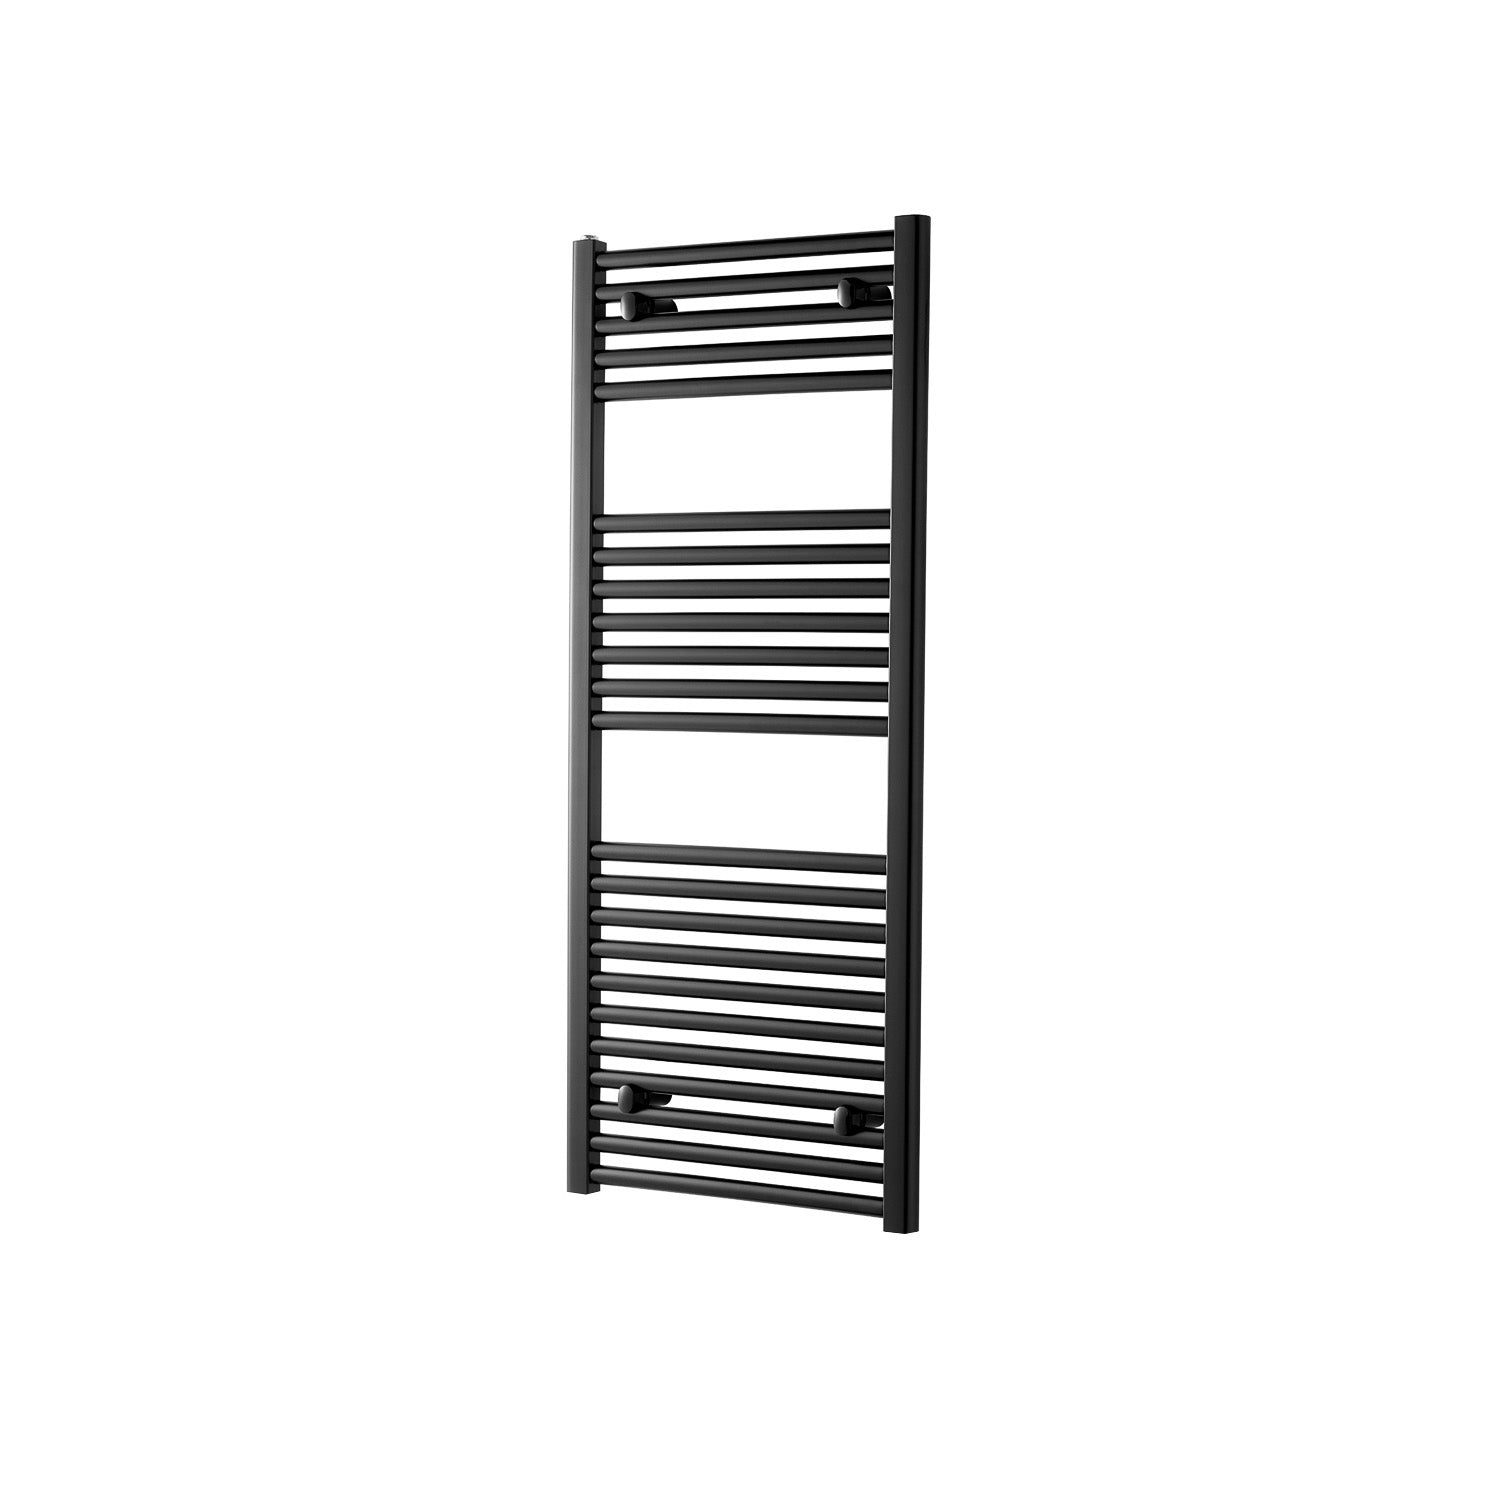 1200x500mm Modale Anti-Scald Towel Rail with a matt black finish on a white background